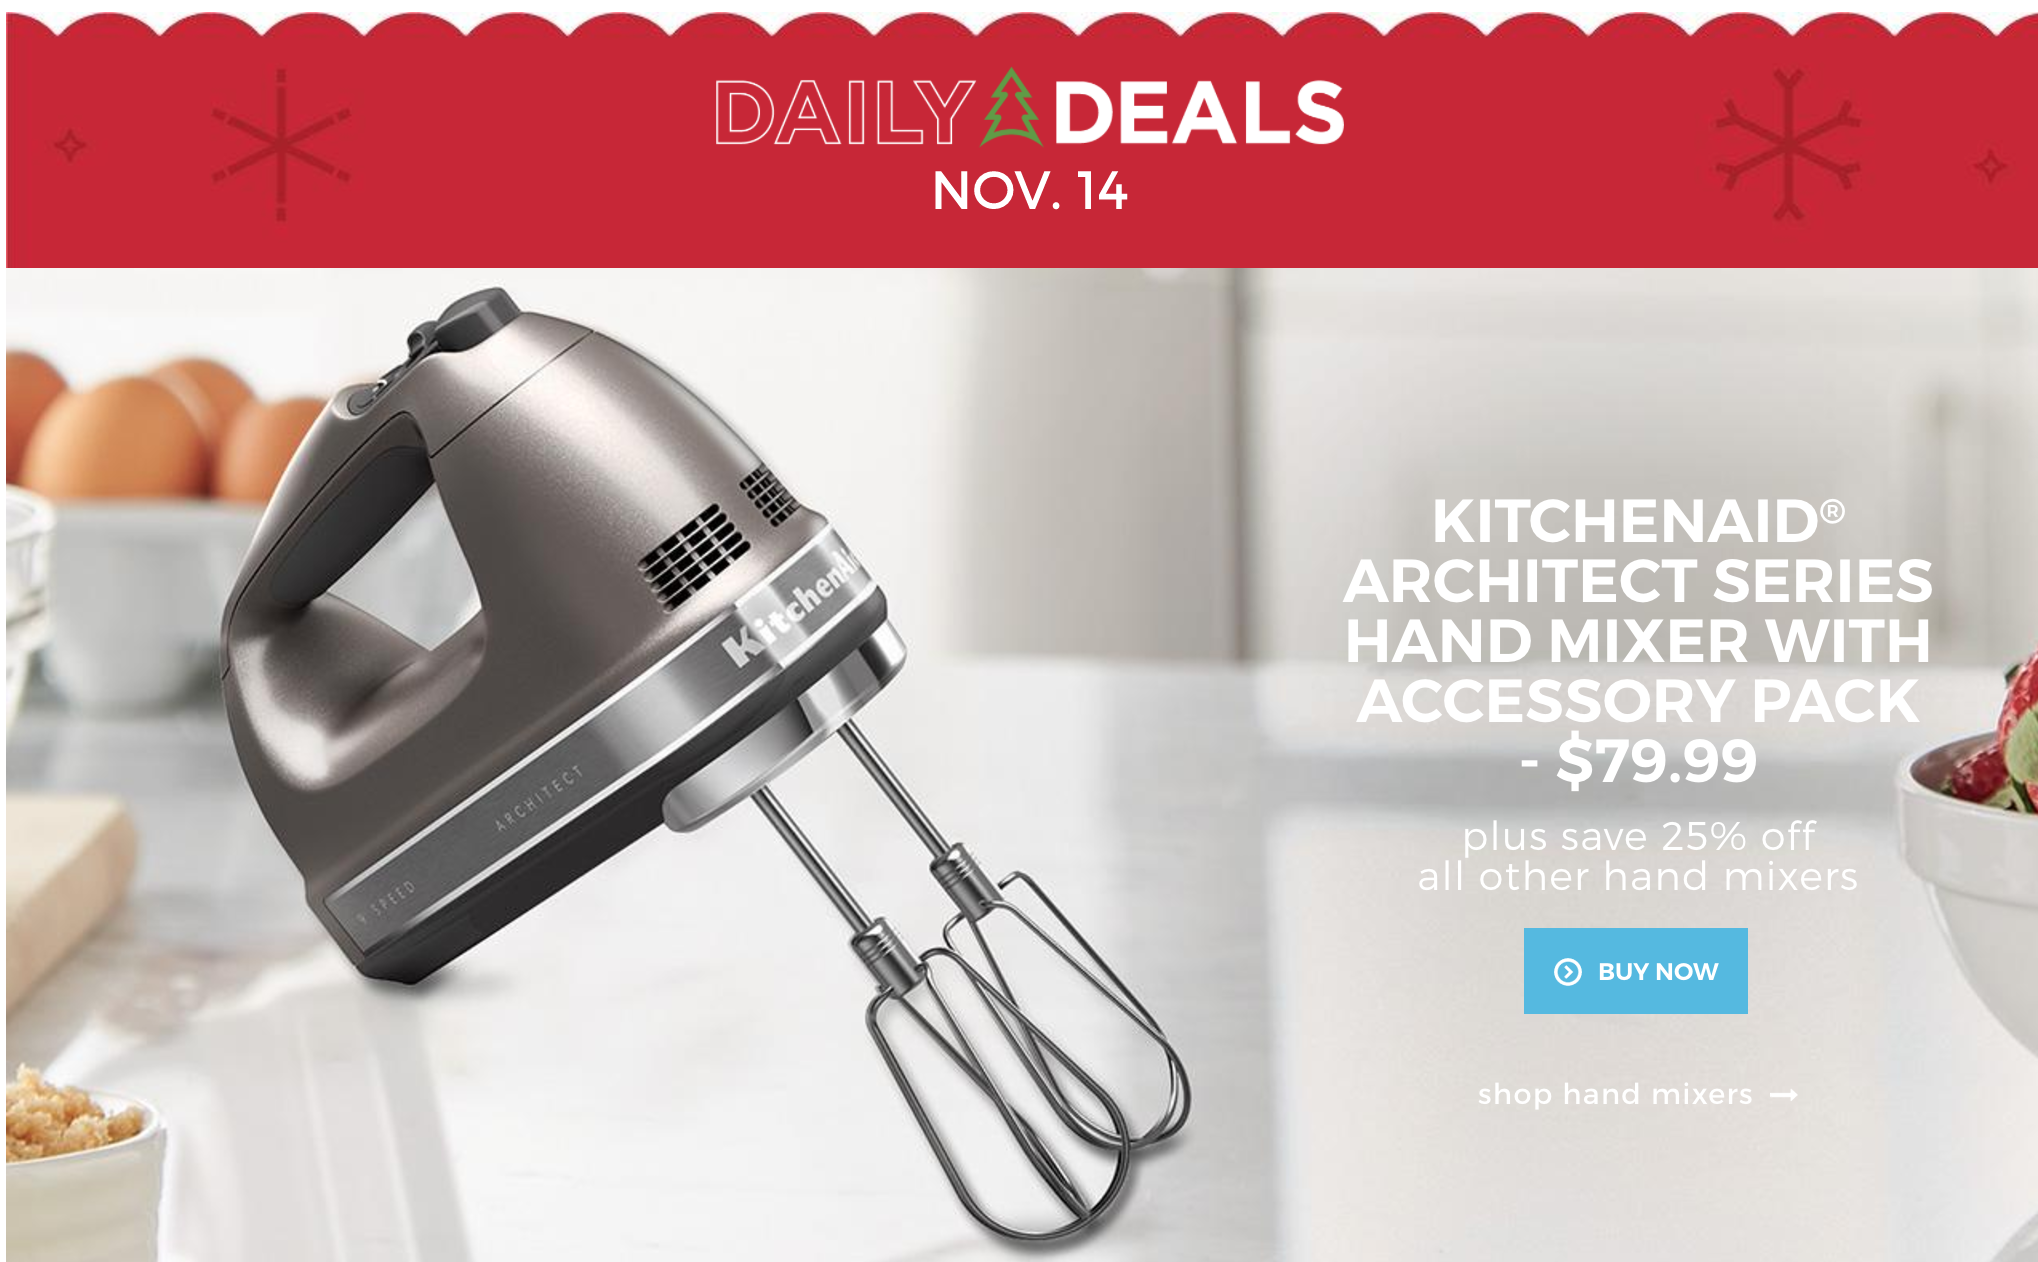 Uncategorized Sears Canada Kitchen Appliances sears canada daily deals today save 50 off kitchenaid hand mixer bakeware